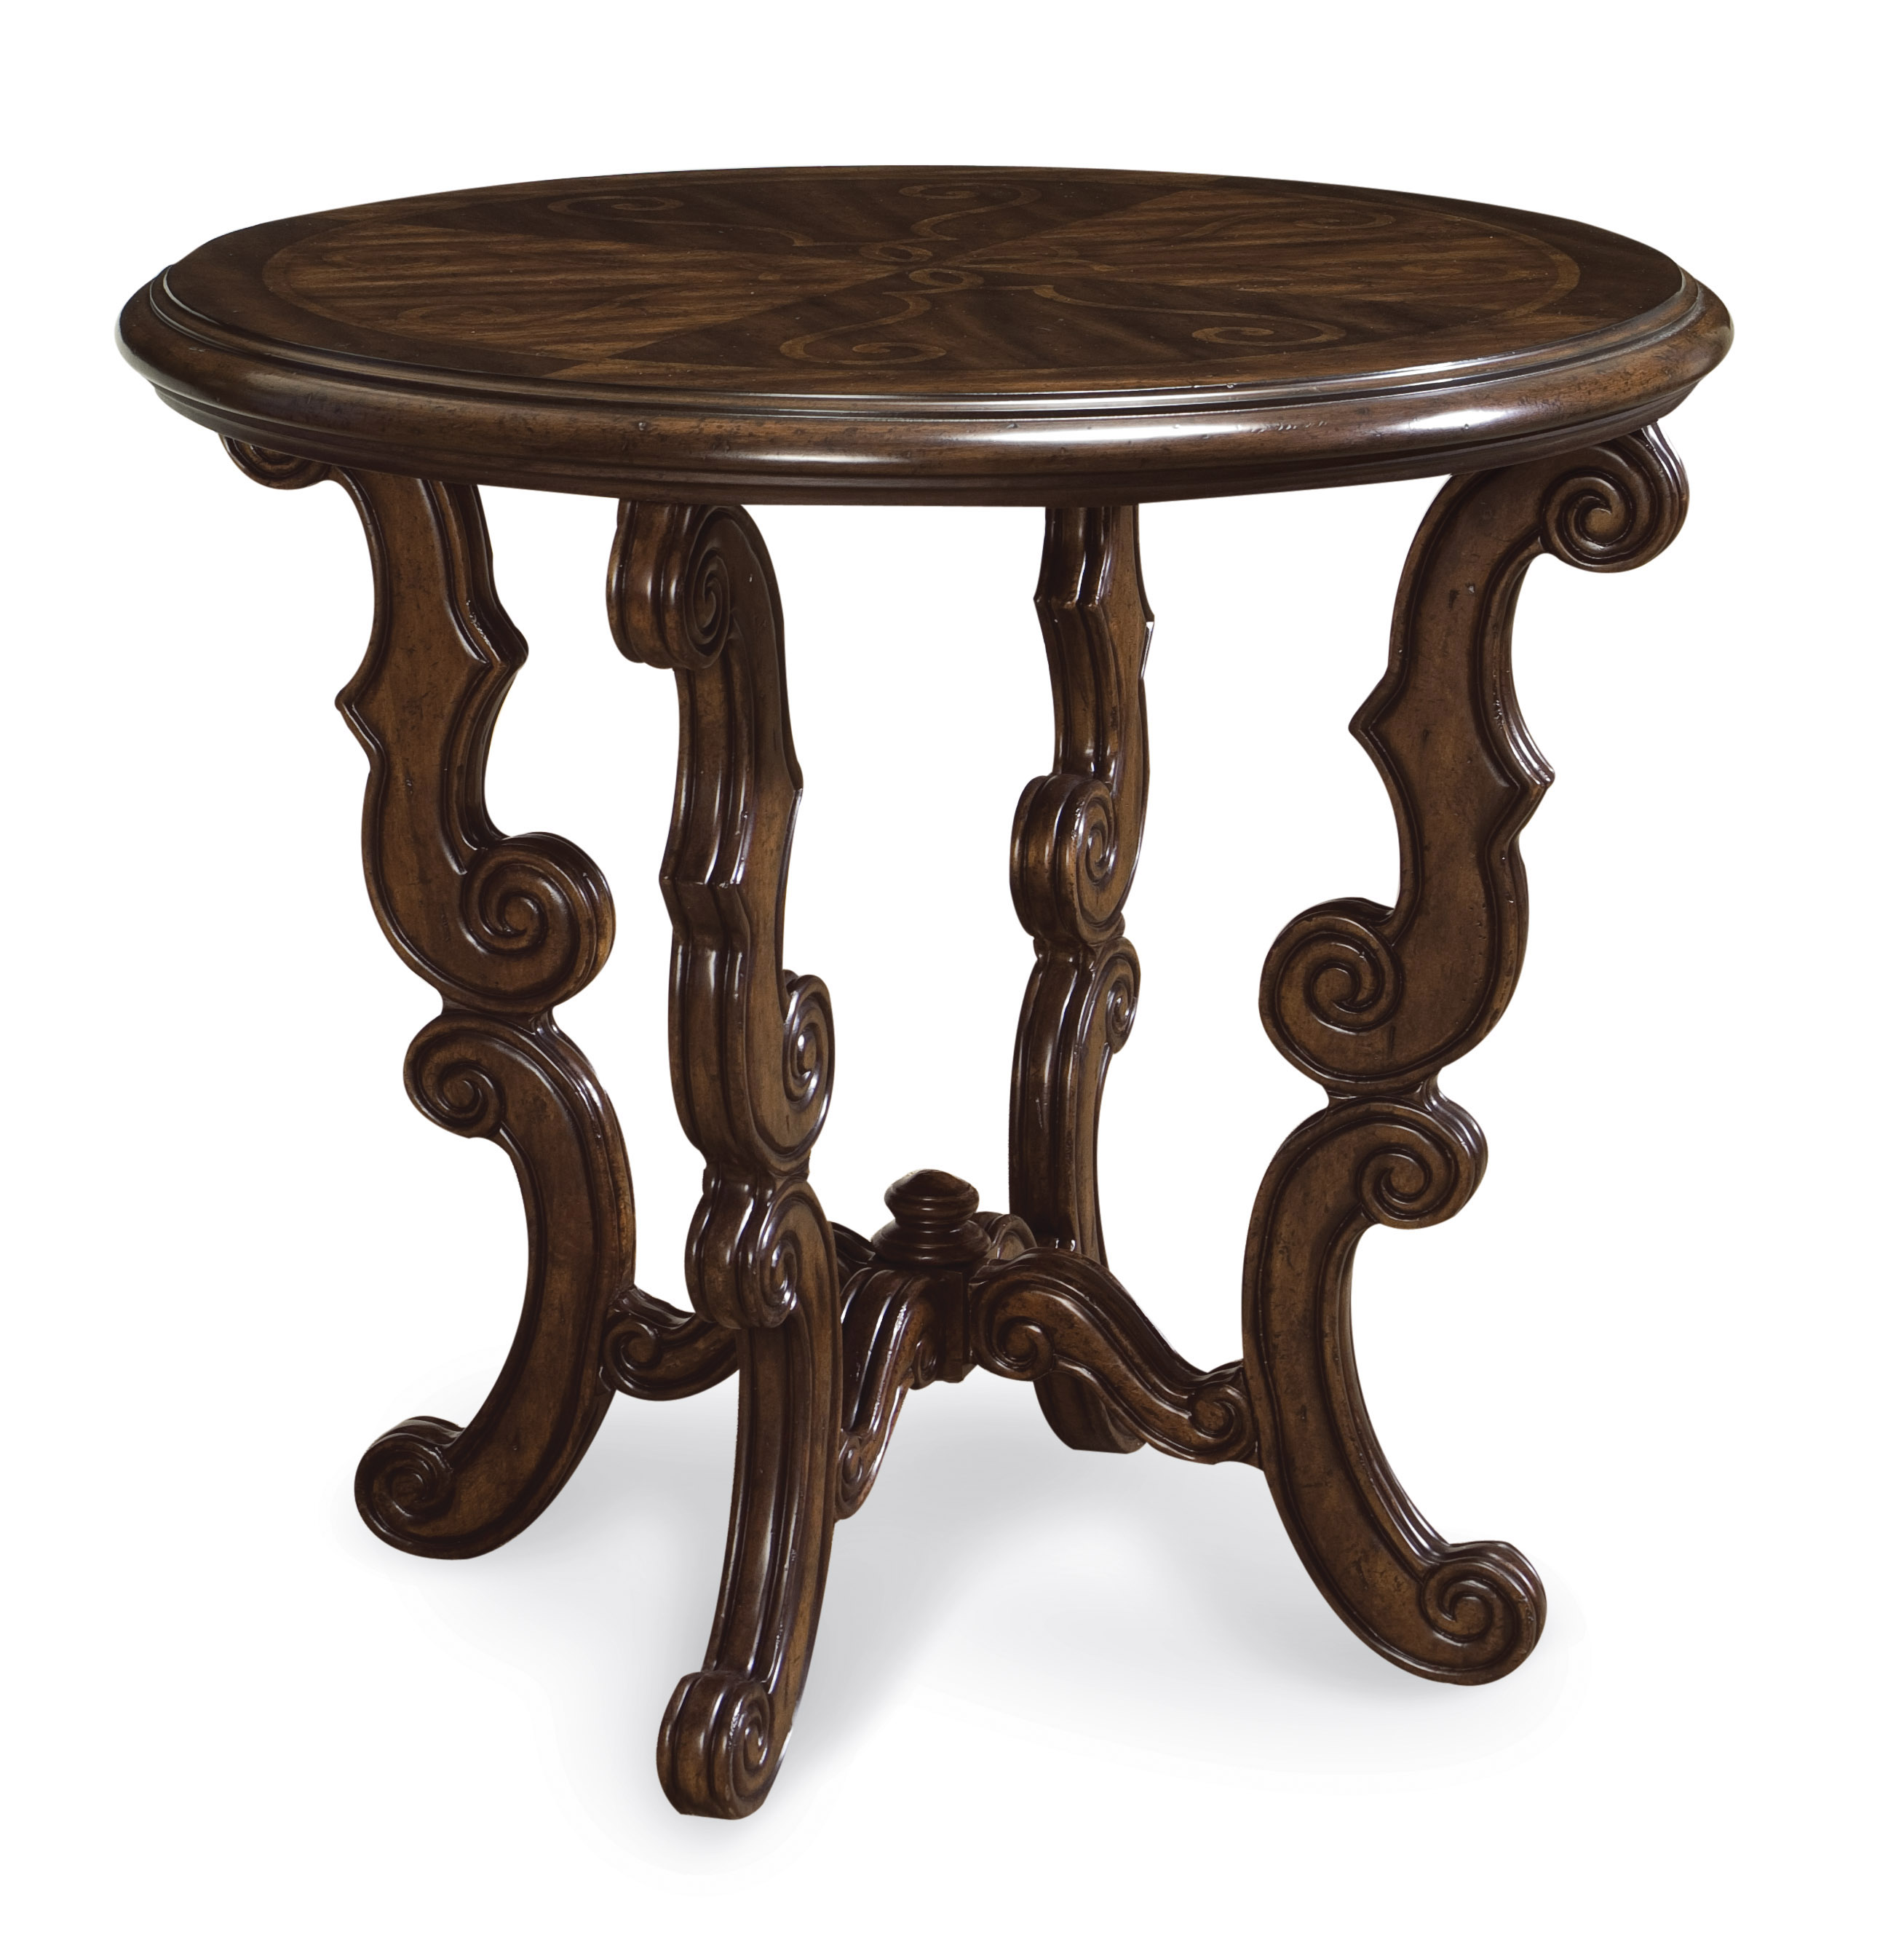 round accent table furniture design popular with best tables ideas amp decors antique small dale tiffany aldridge lamp bronze side fireplace chairs modern metal end inches high